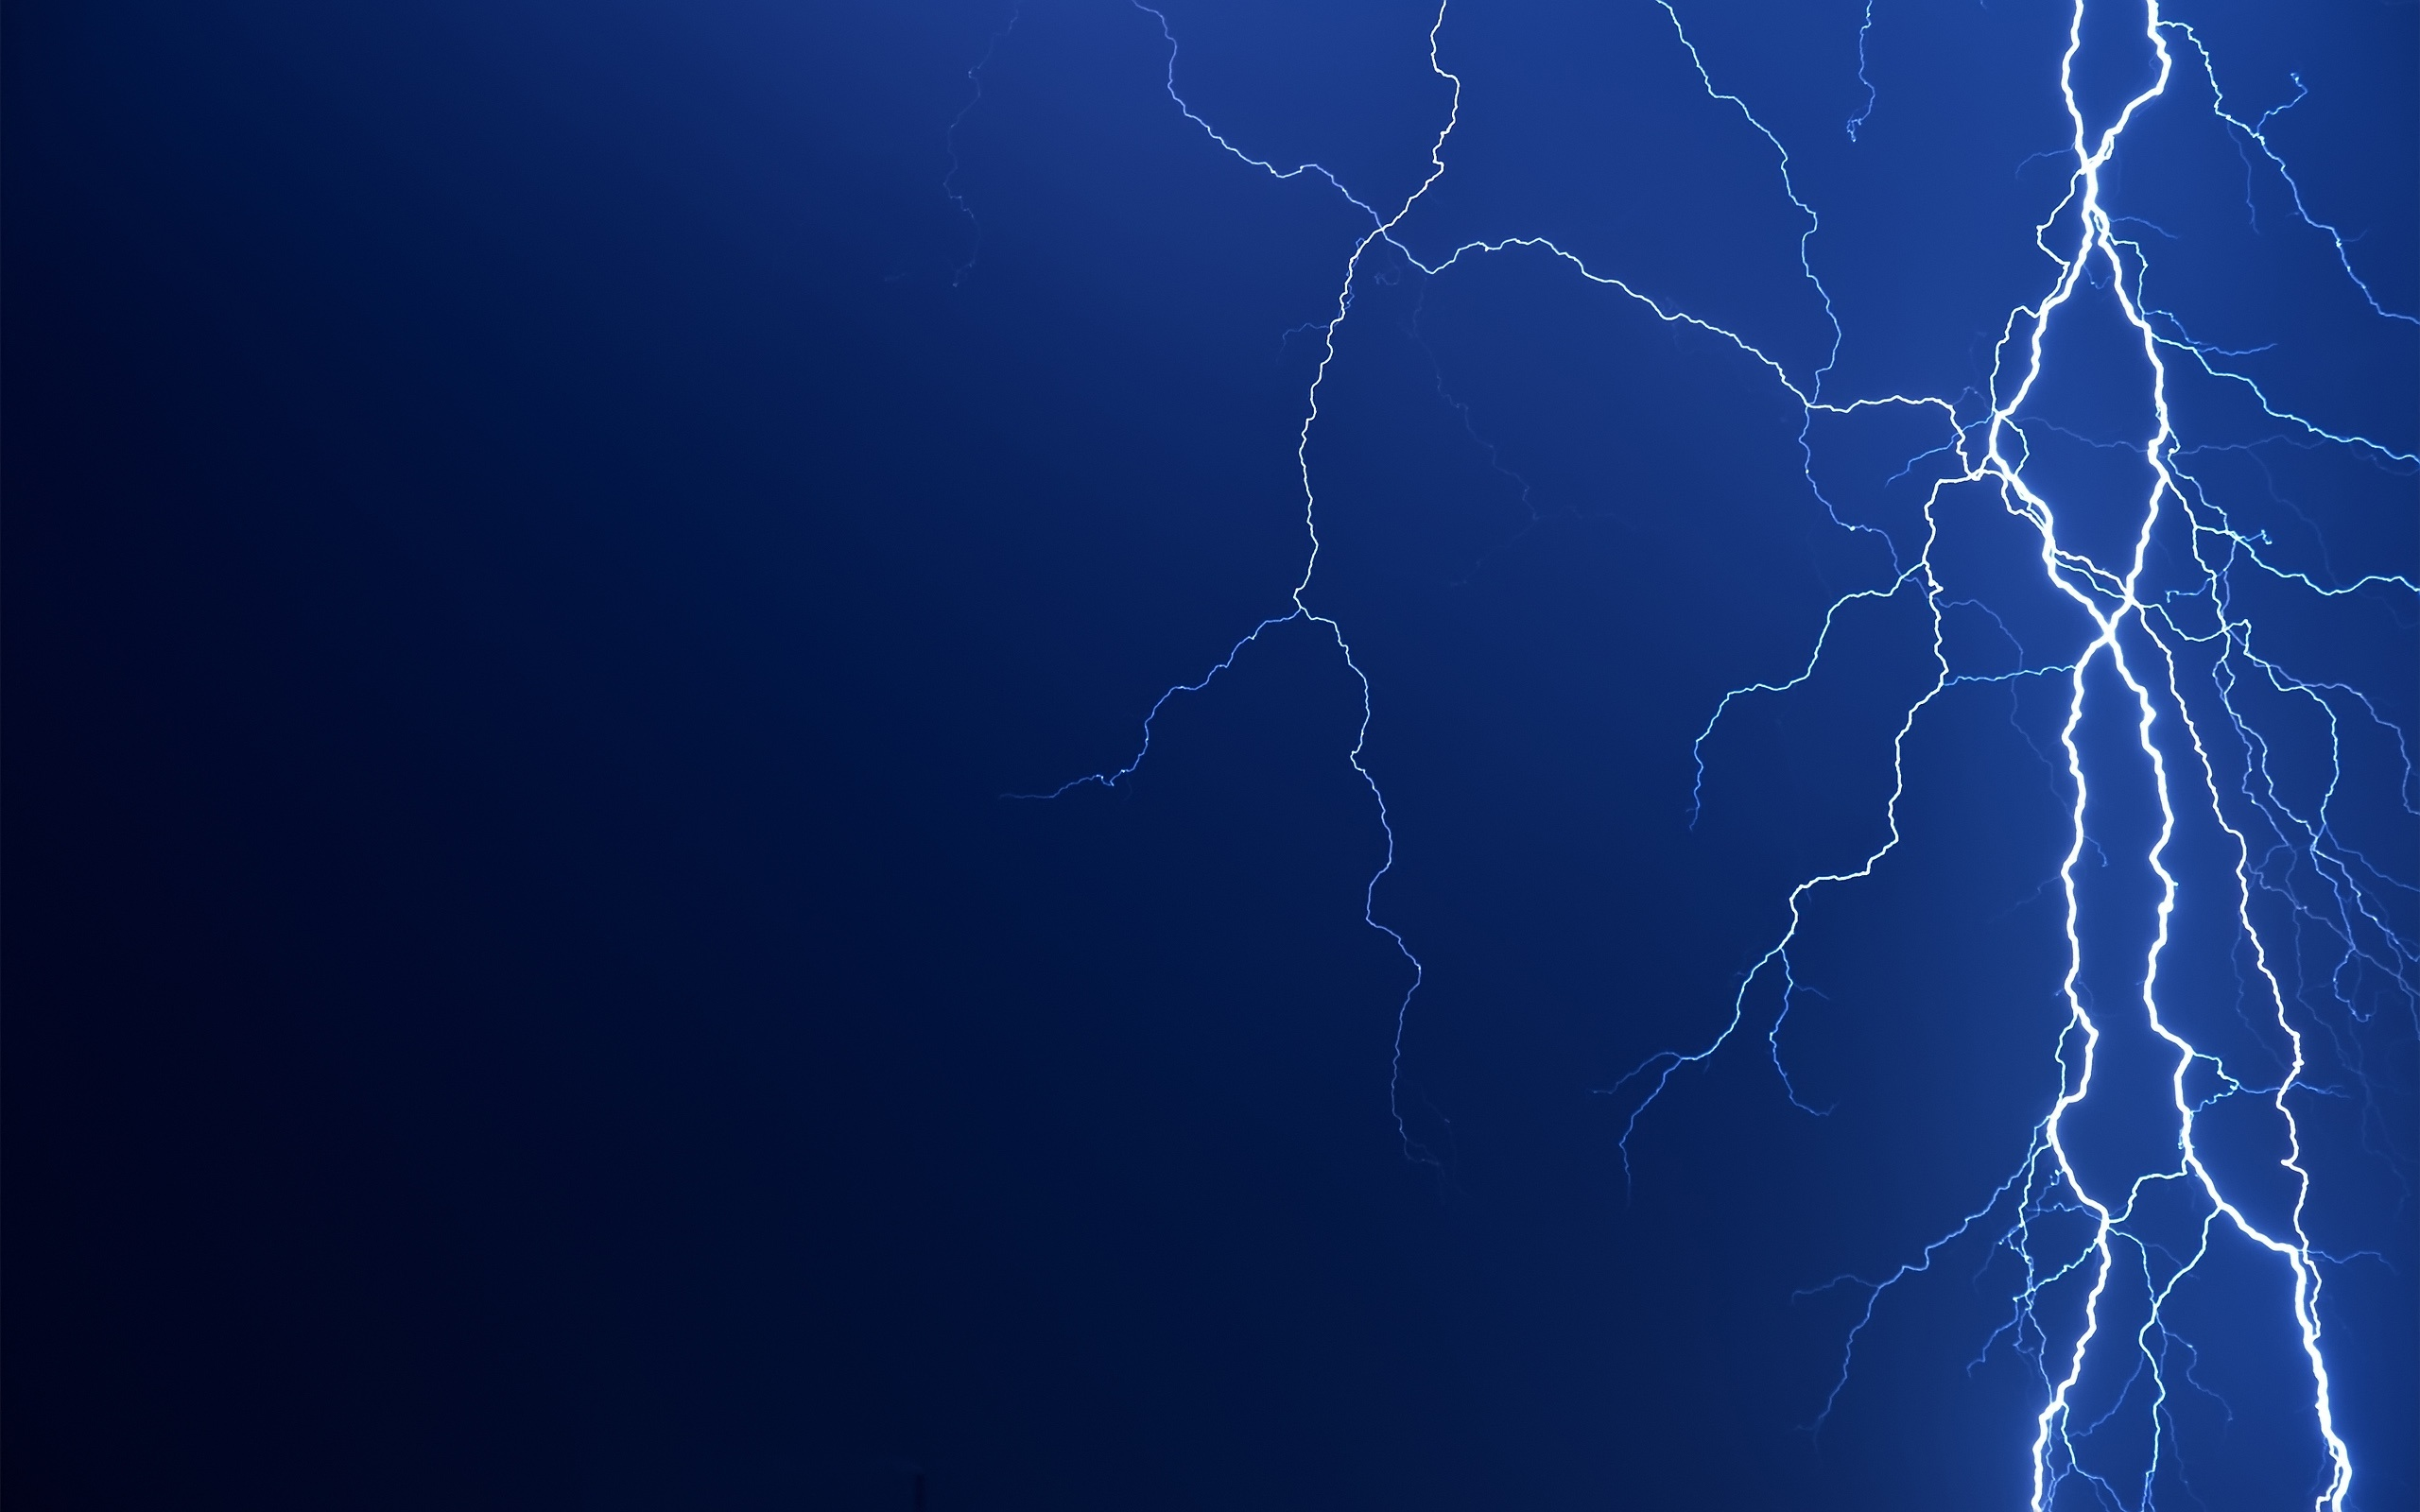 2560x1600 Lightning bolt desktop PC and Mac wallpaper 2560x1600